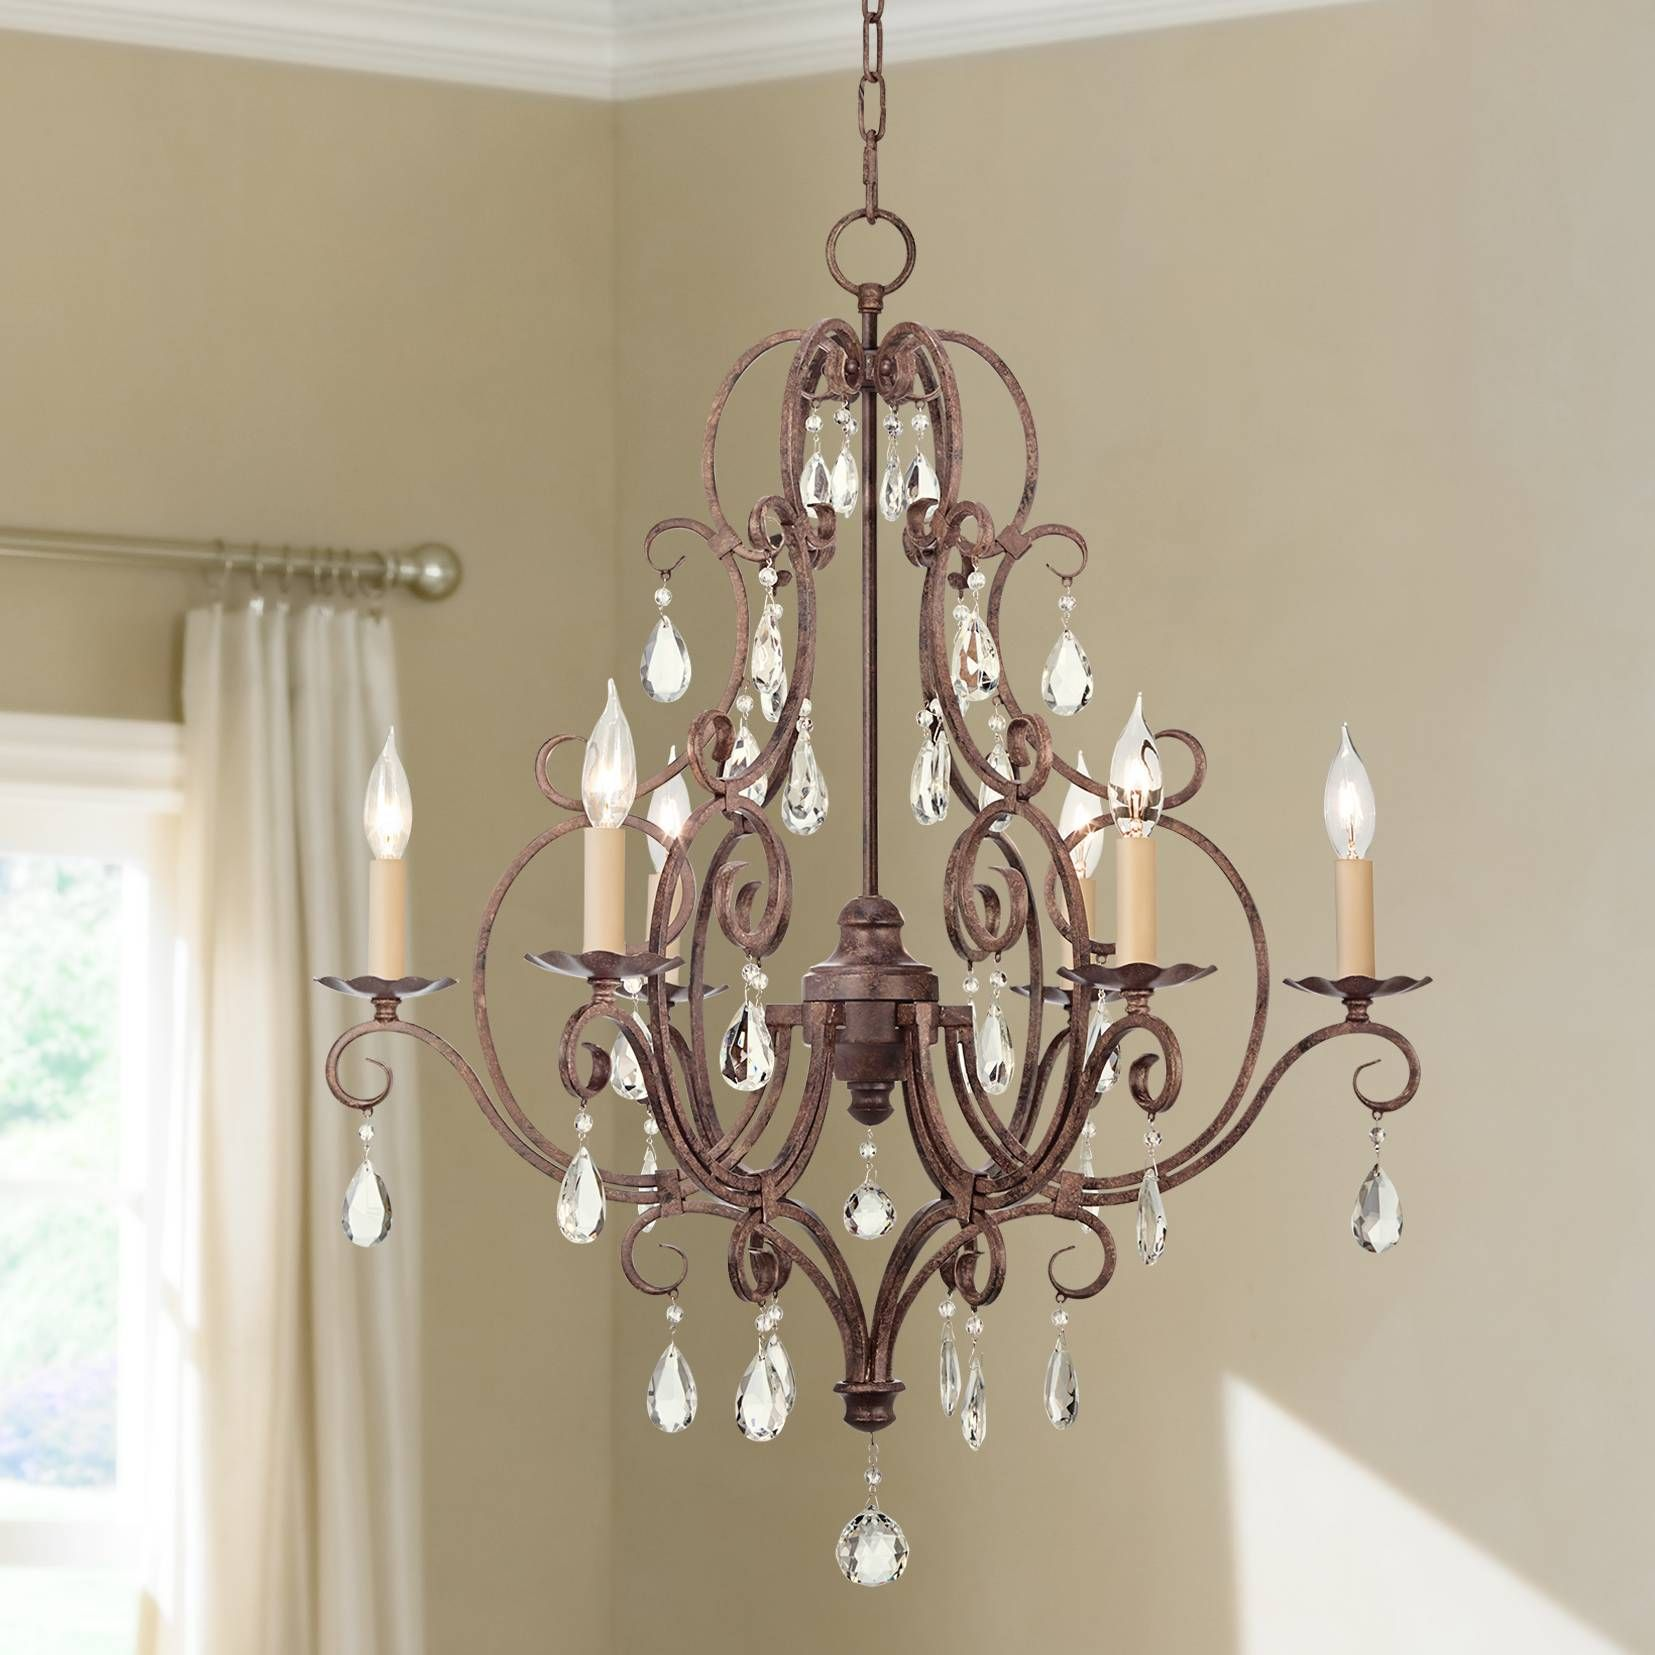 Feiss chateau collection mocha bronze crystal chandelier 59206 feiss chateau collection mocha bronze crystal chandelier 59206 lamps plus aloadofball Gallery